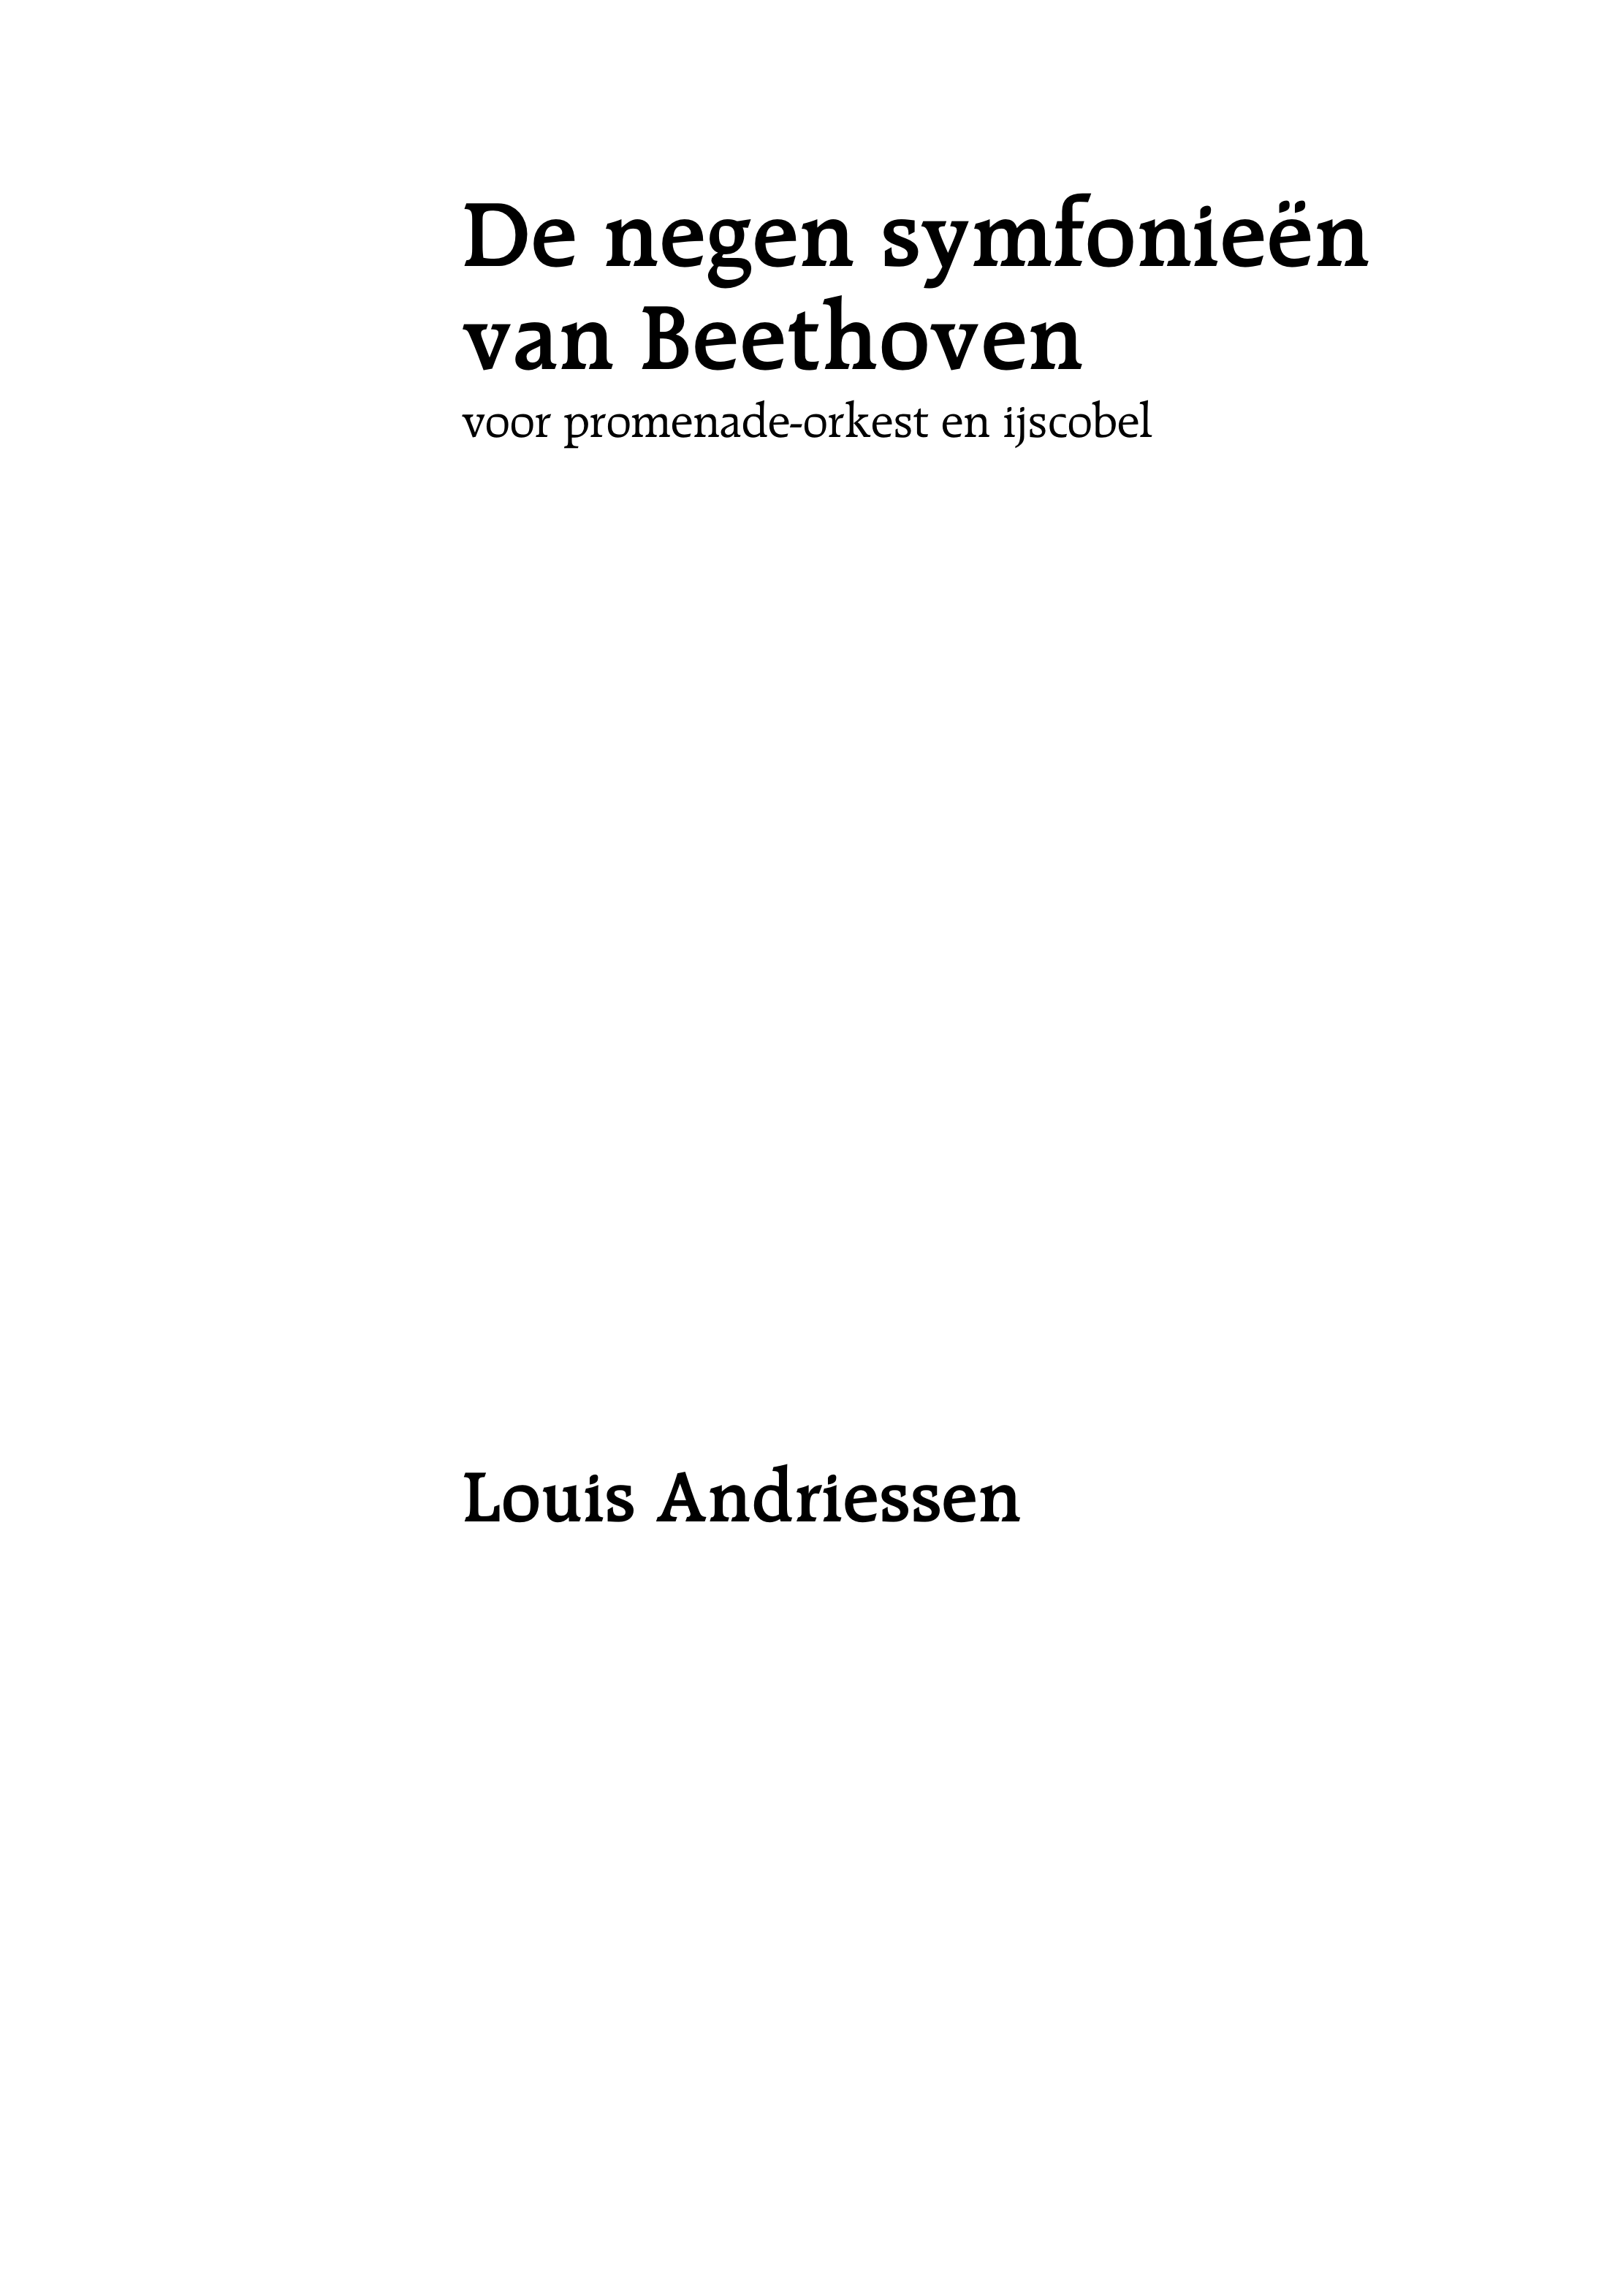 De 9 symph van Beethoven copia